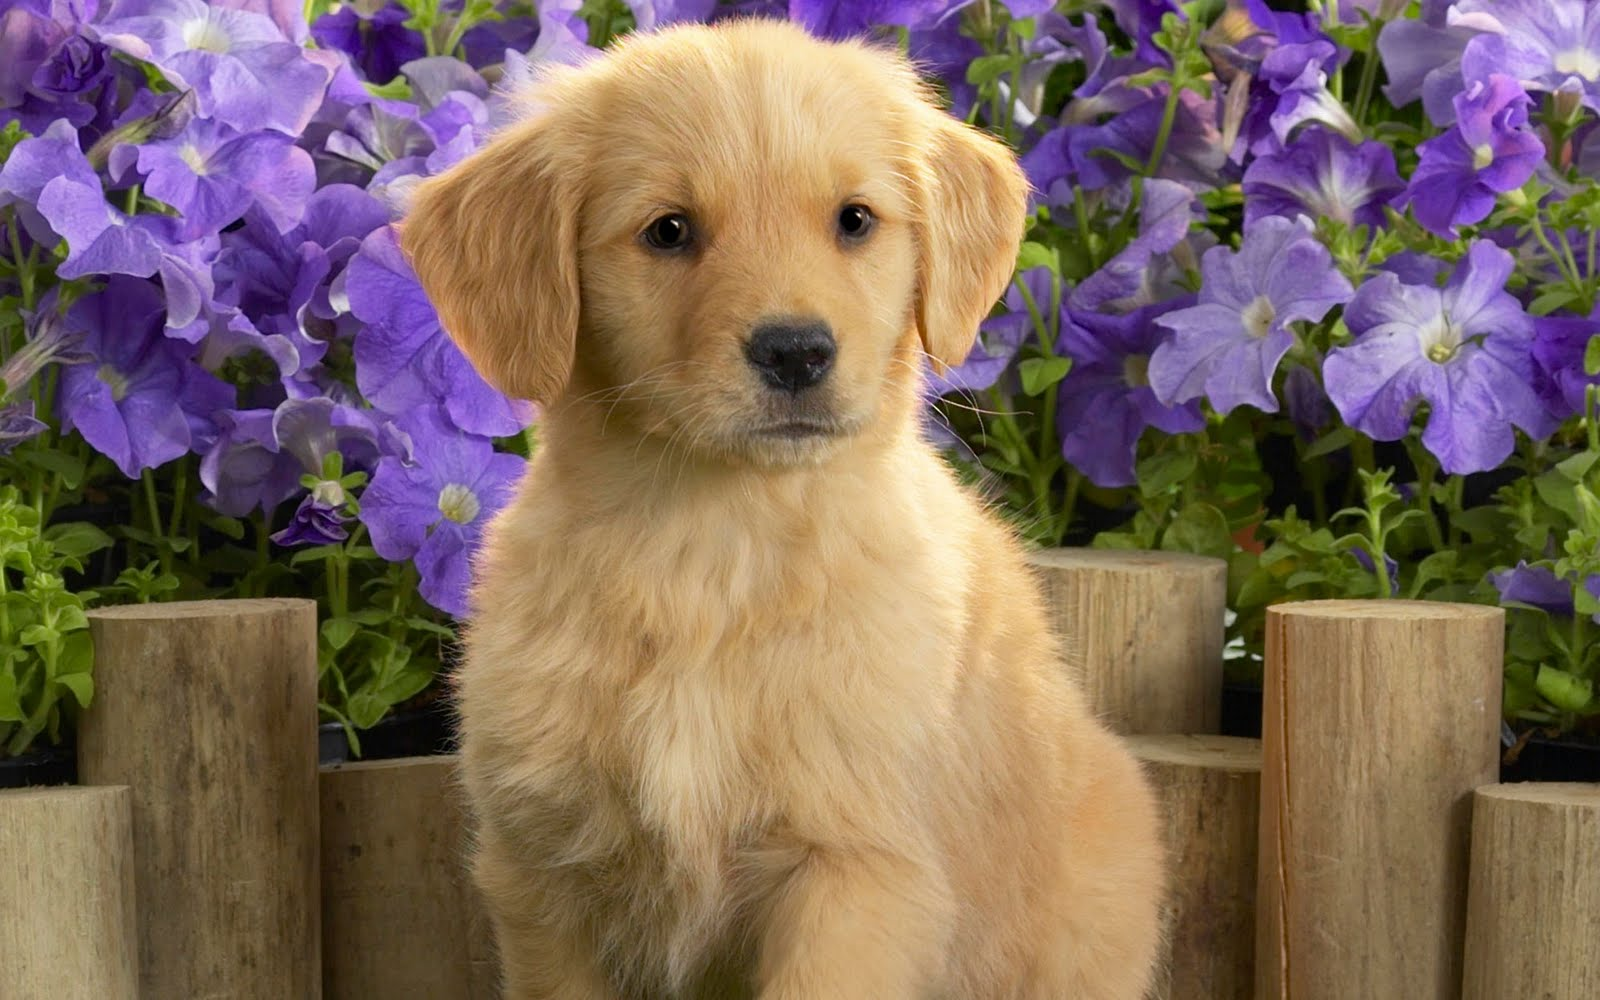 Cute Golden Retriever puppy and flowers photo and wallpaper